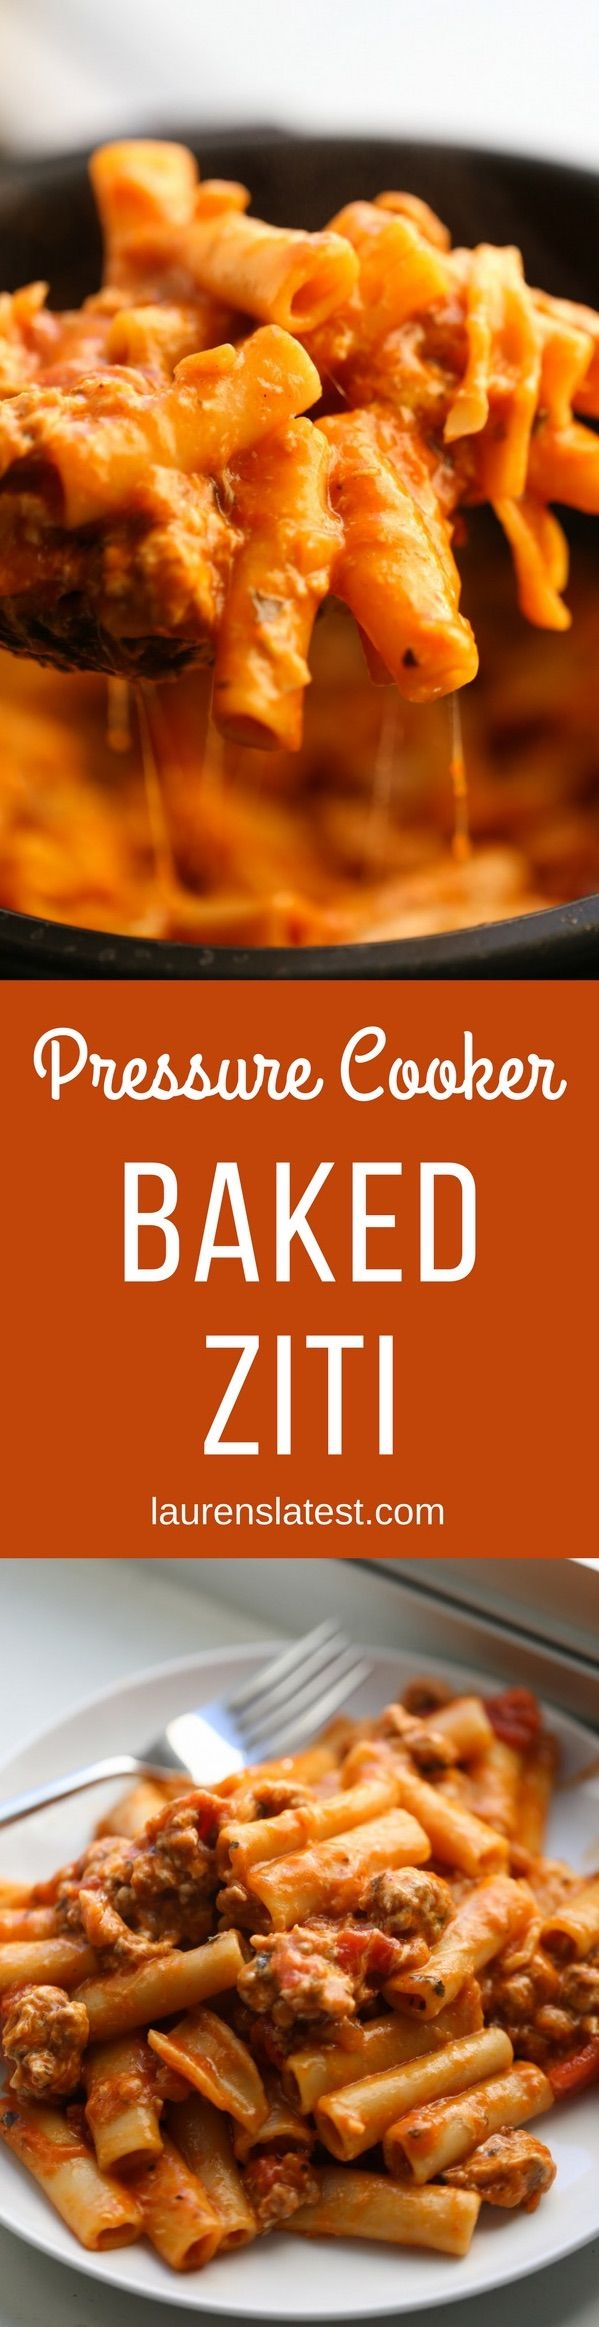 Pressure Cooker Baked Ziti--Get the cheesy, slow-cooked flavor found in a traditional Baked Ziti right out of your pressure cooker! In only 25 minutes, you could be enjoying this delicious Italian dinner without all the wait time or work.